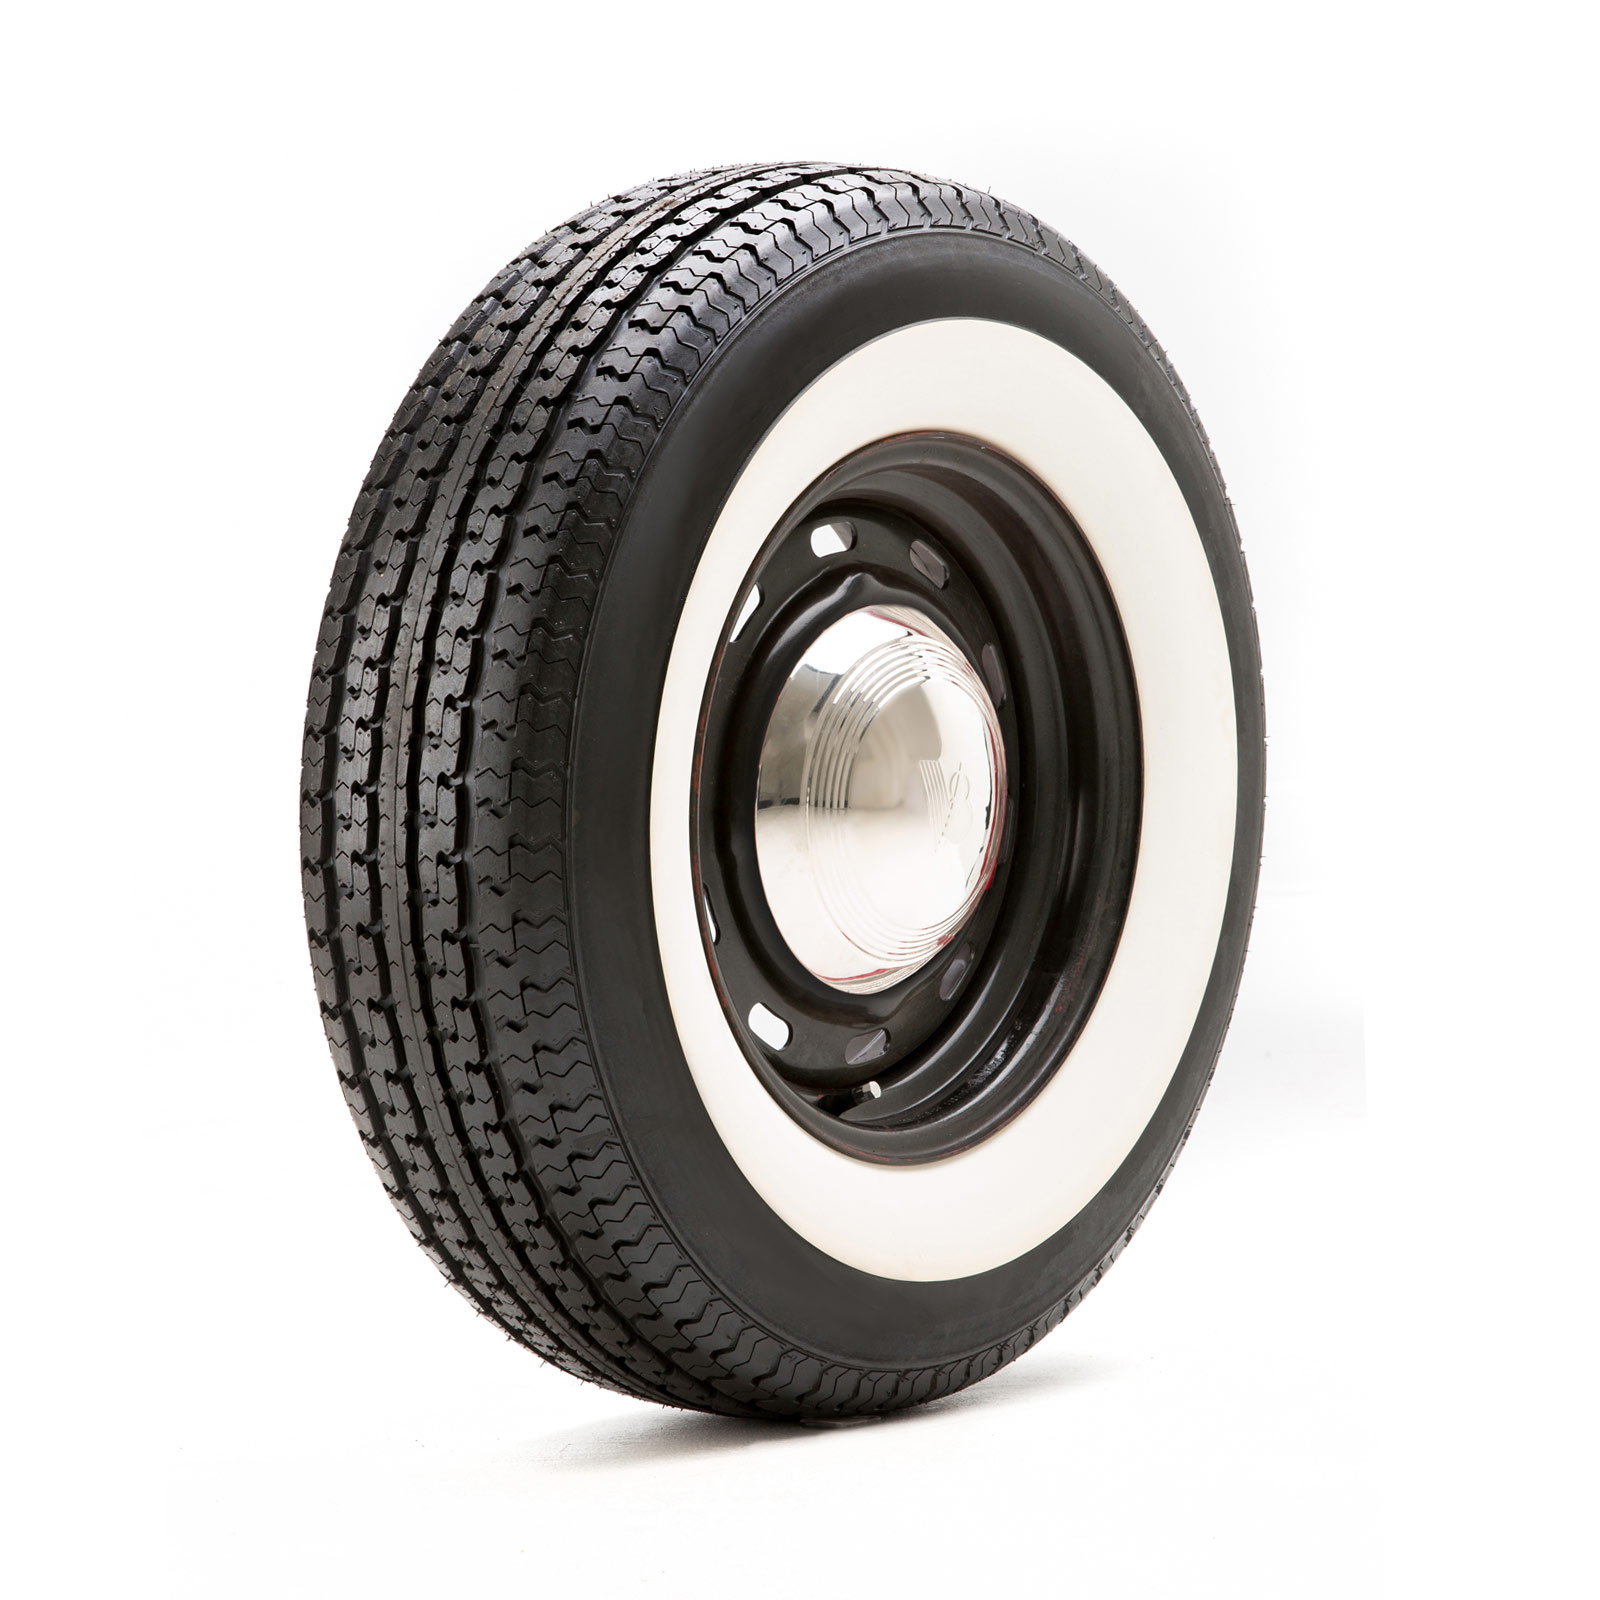 Extra Load Trailer Tires 13 14 15 16 Inch White Wall Tires